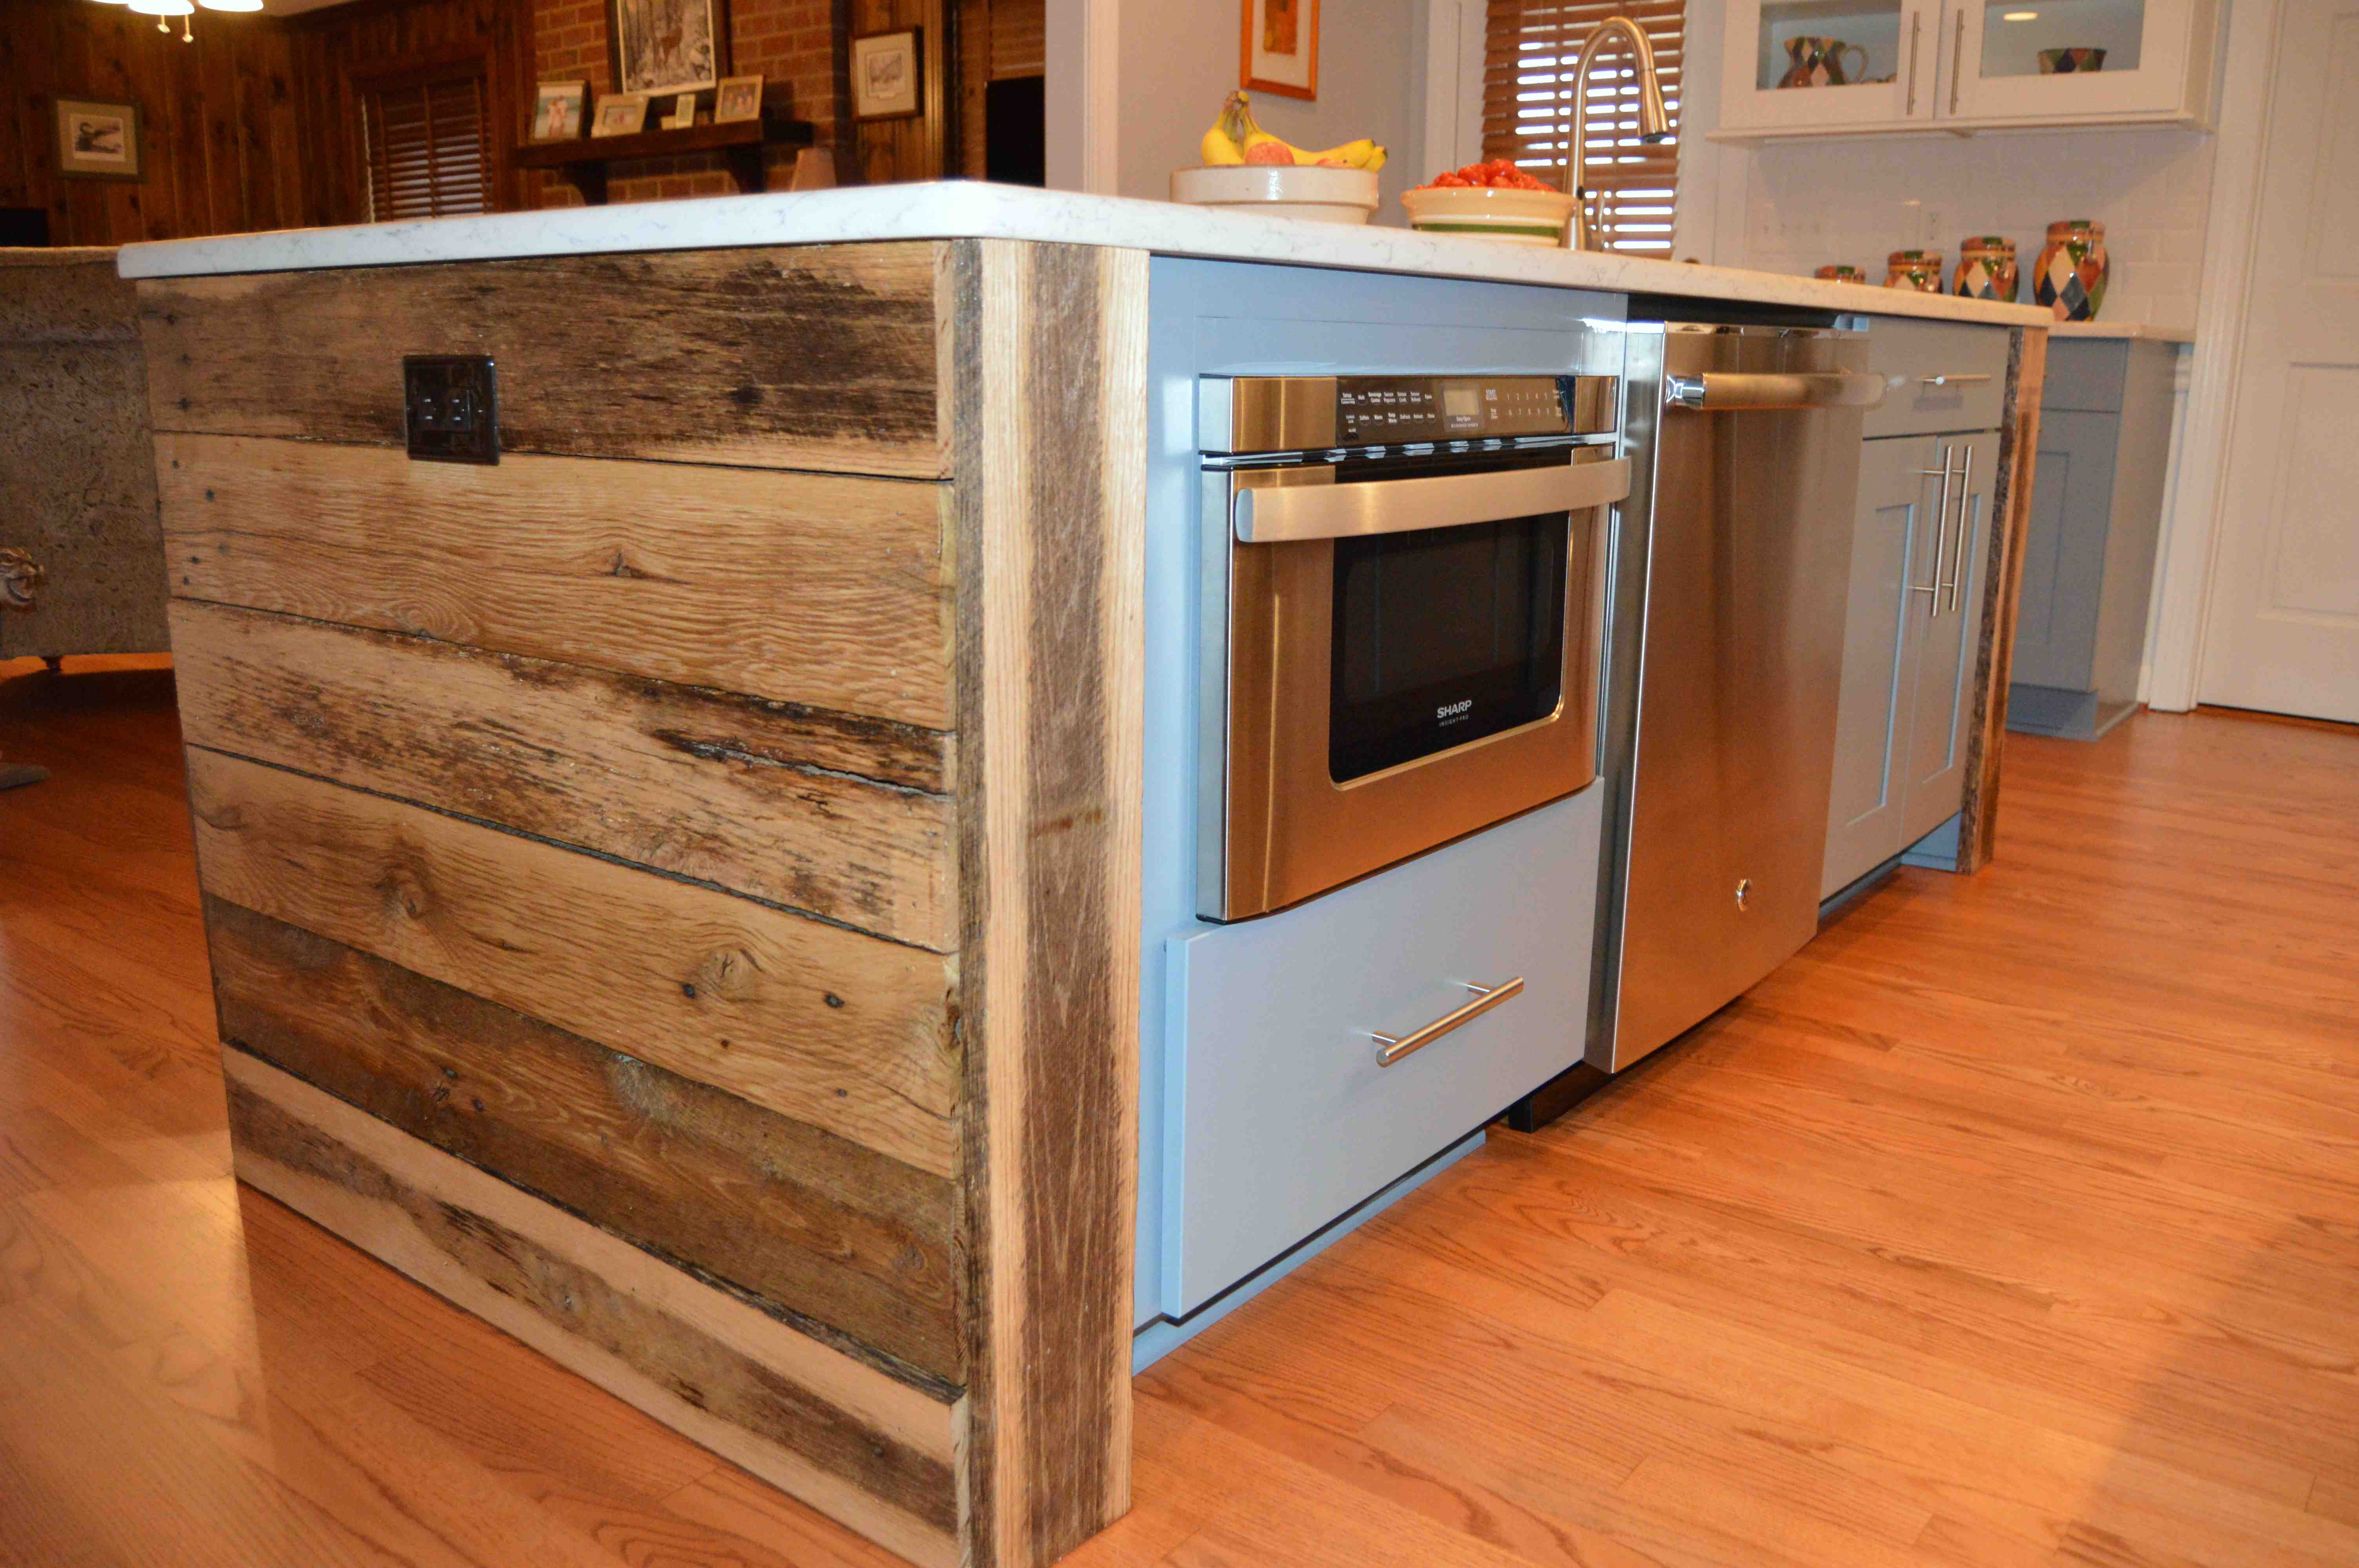 kitchen remodeling virginia beach country ideas on a budget carr remodel hatchett design